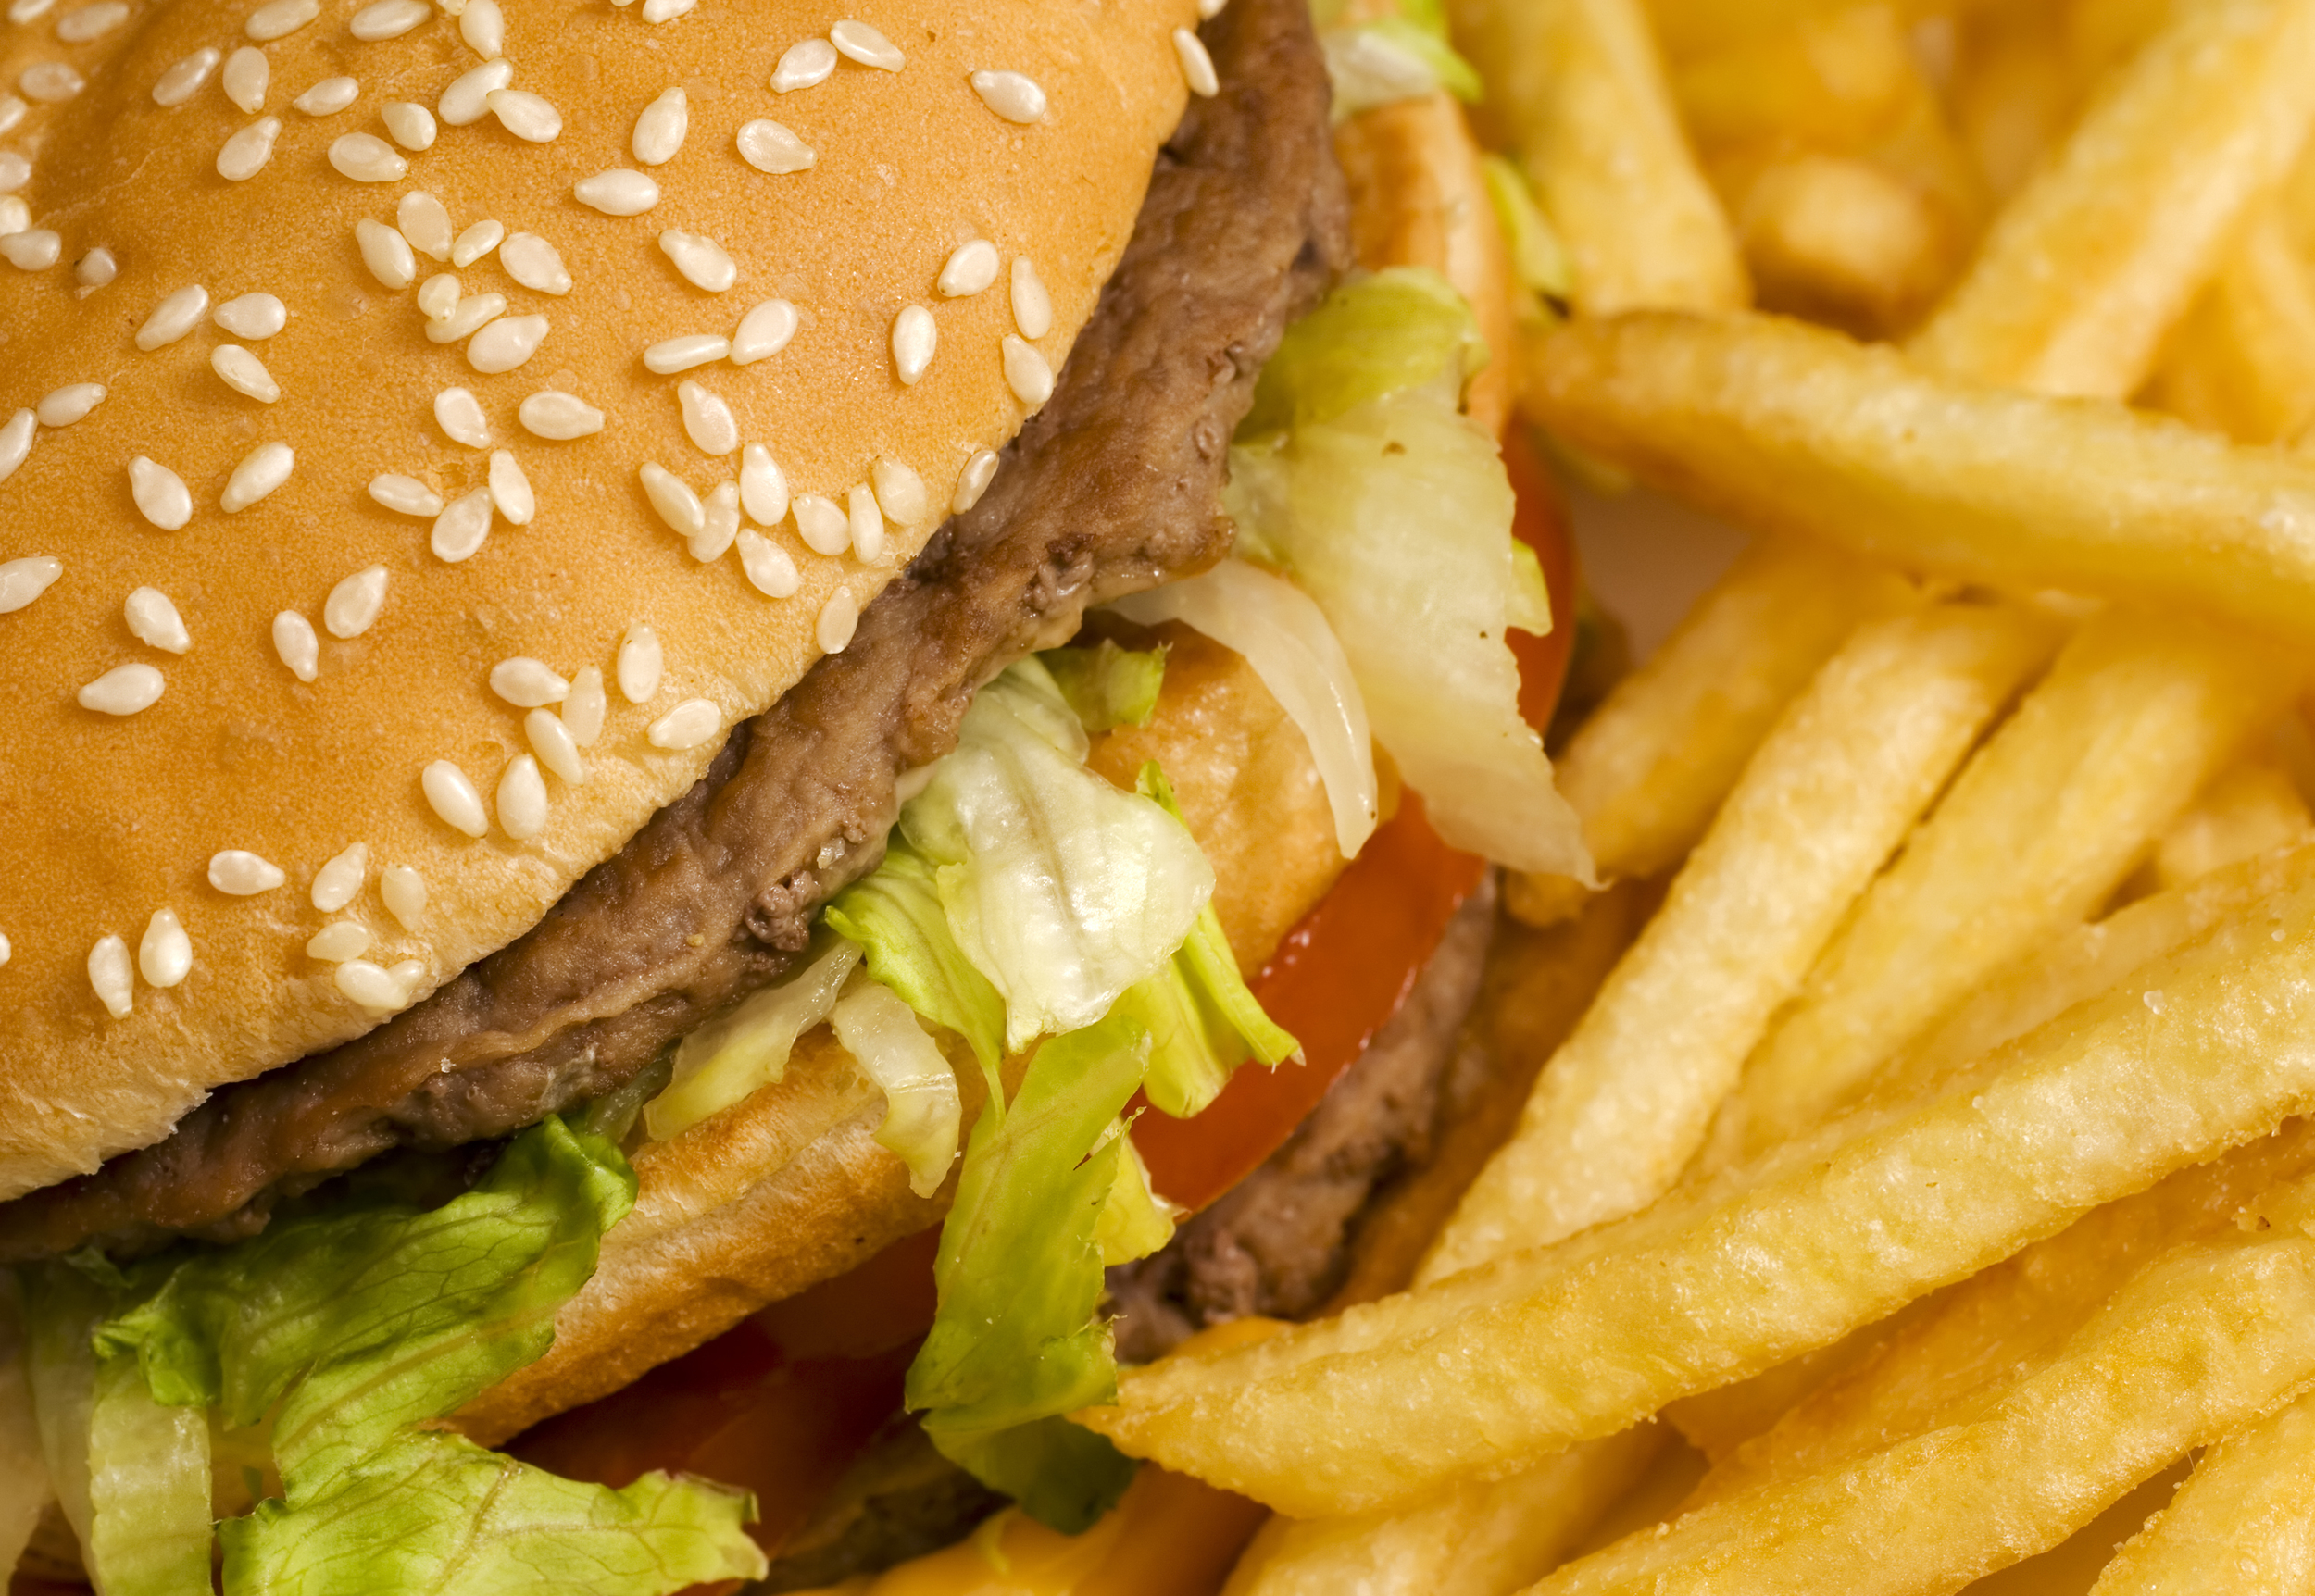 bigstock-burger-and-french-fries-close--26363396.jpg